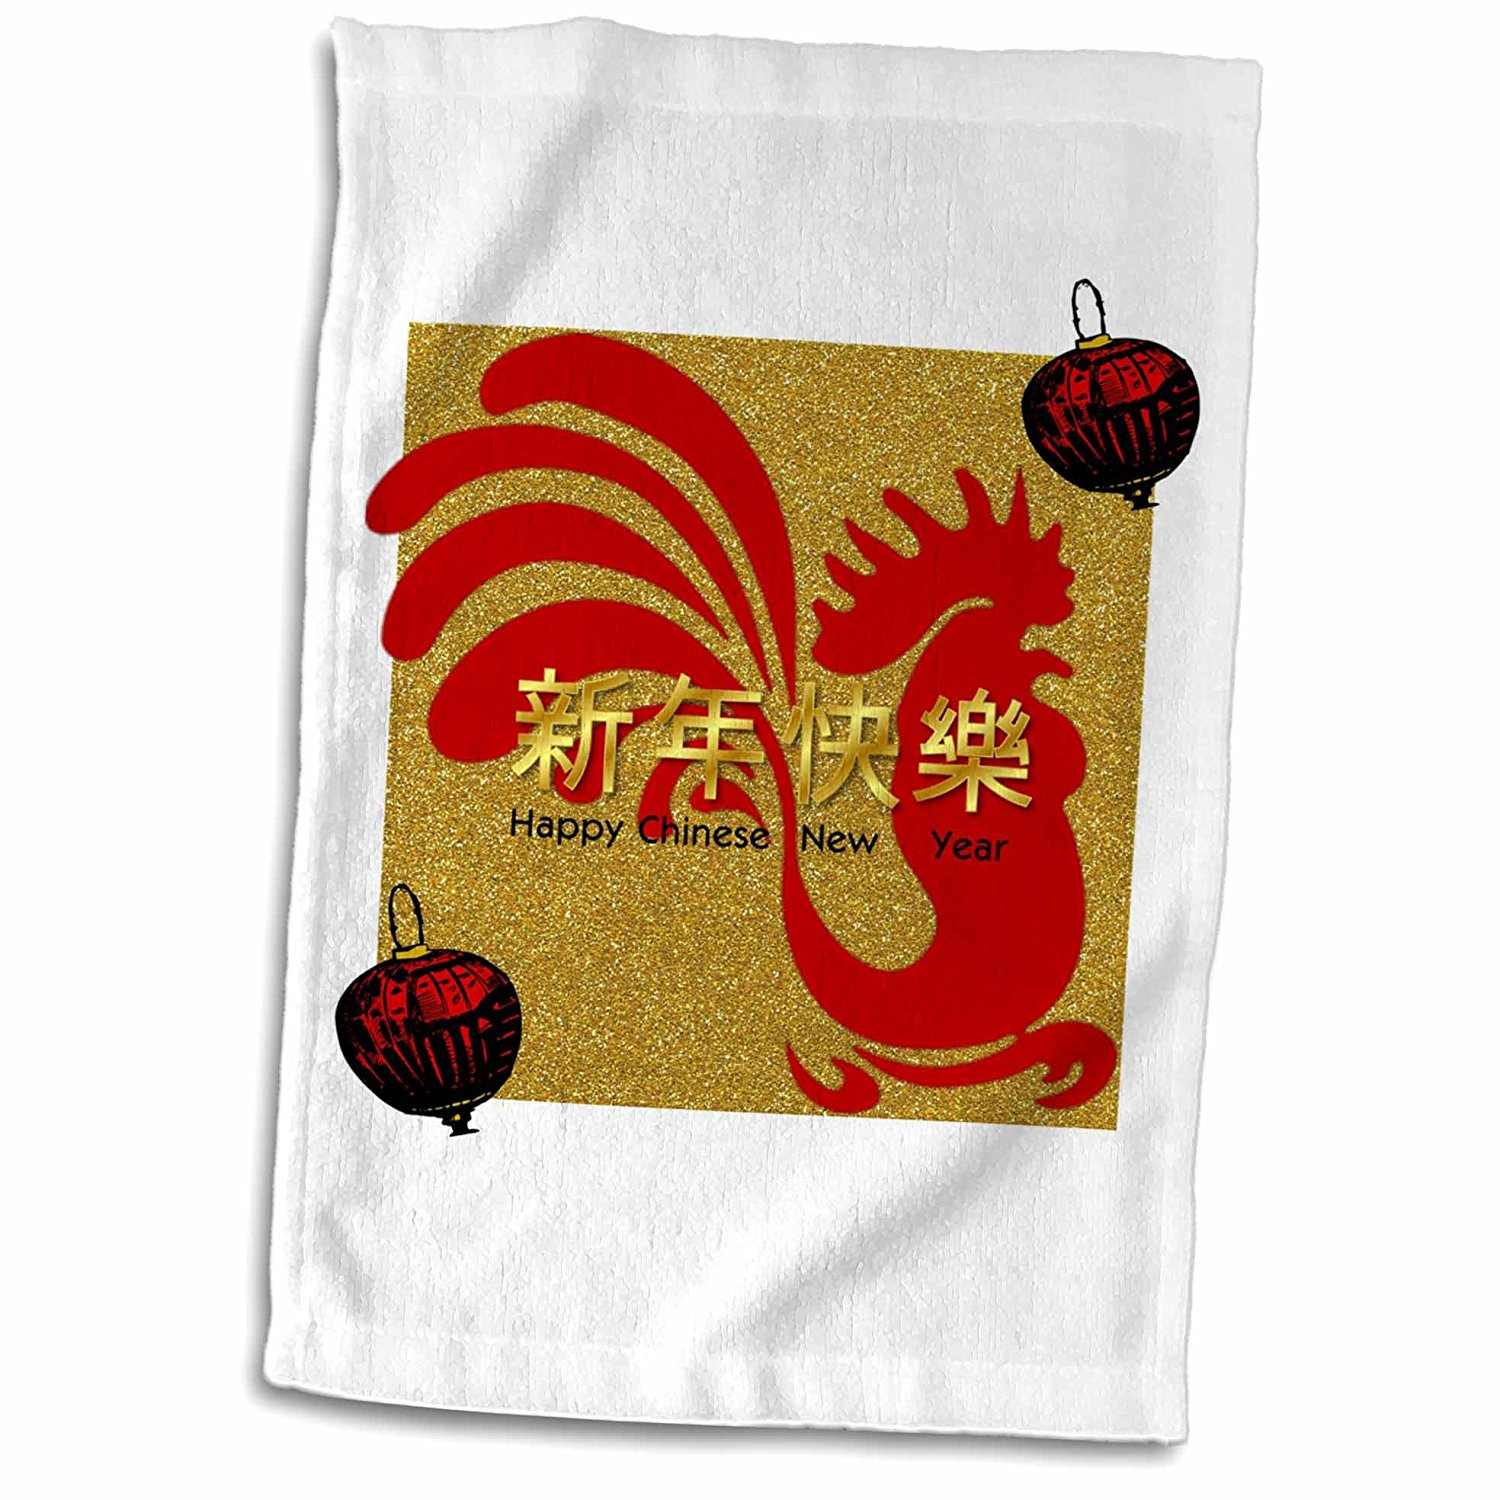 3dRose Florene Chinese New Year Designs - Image of 2017 Chinese New Year Red Rooster Lantern - Gold Faux Glitter - 12x18 Towel (twl_252062_1)